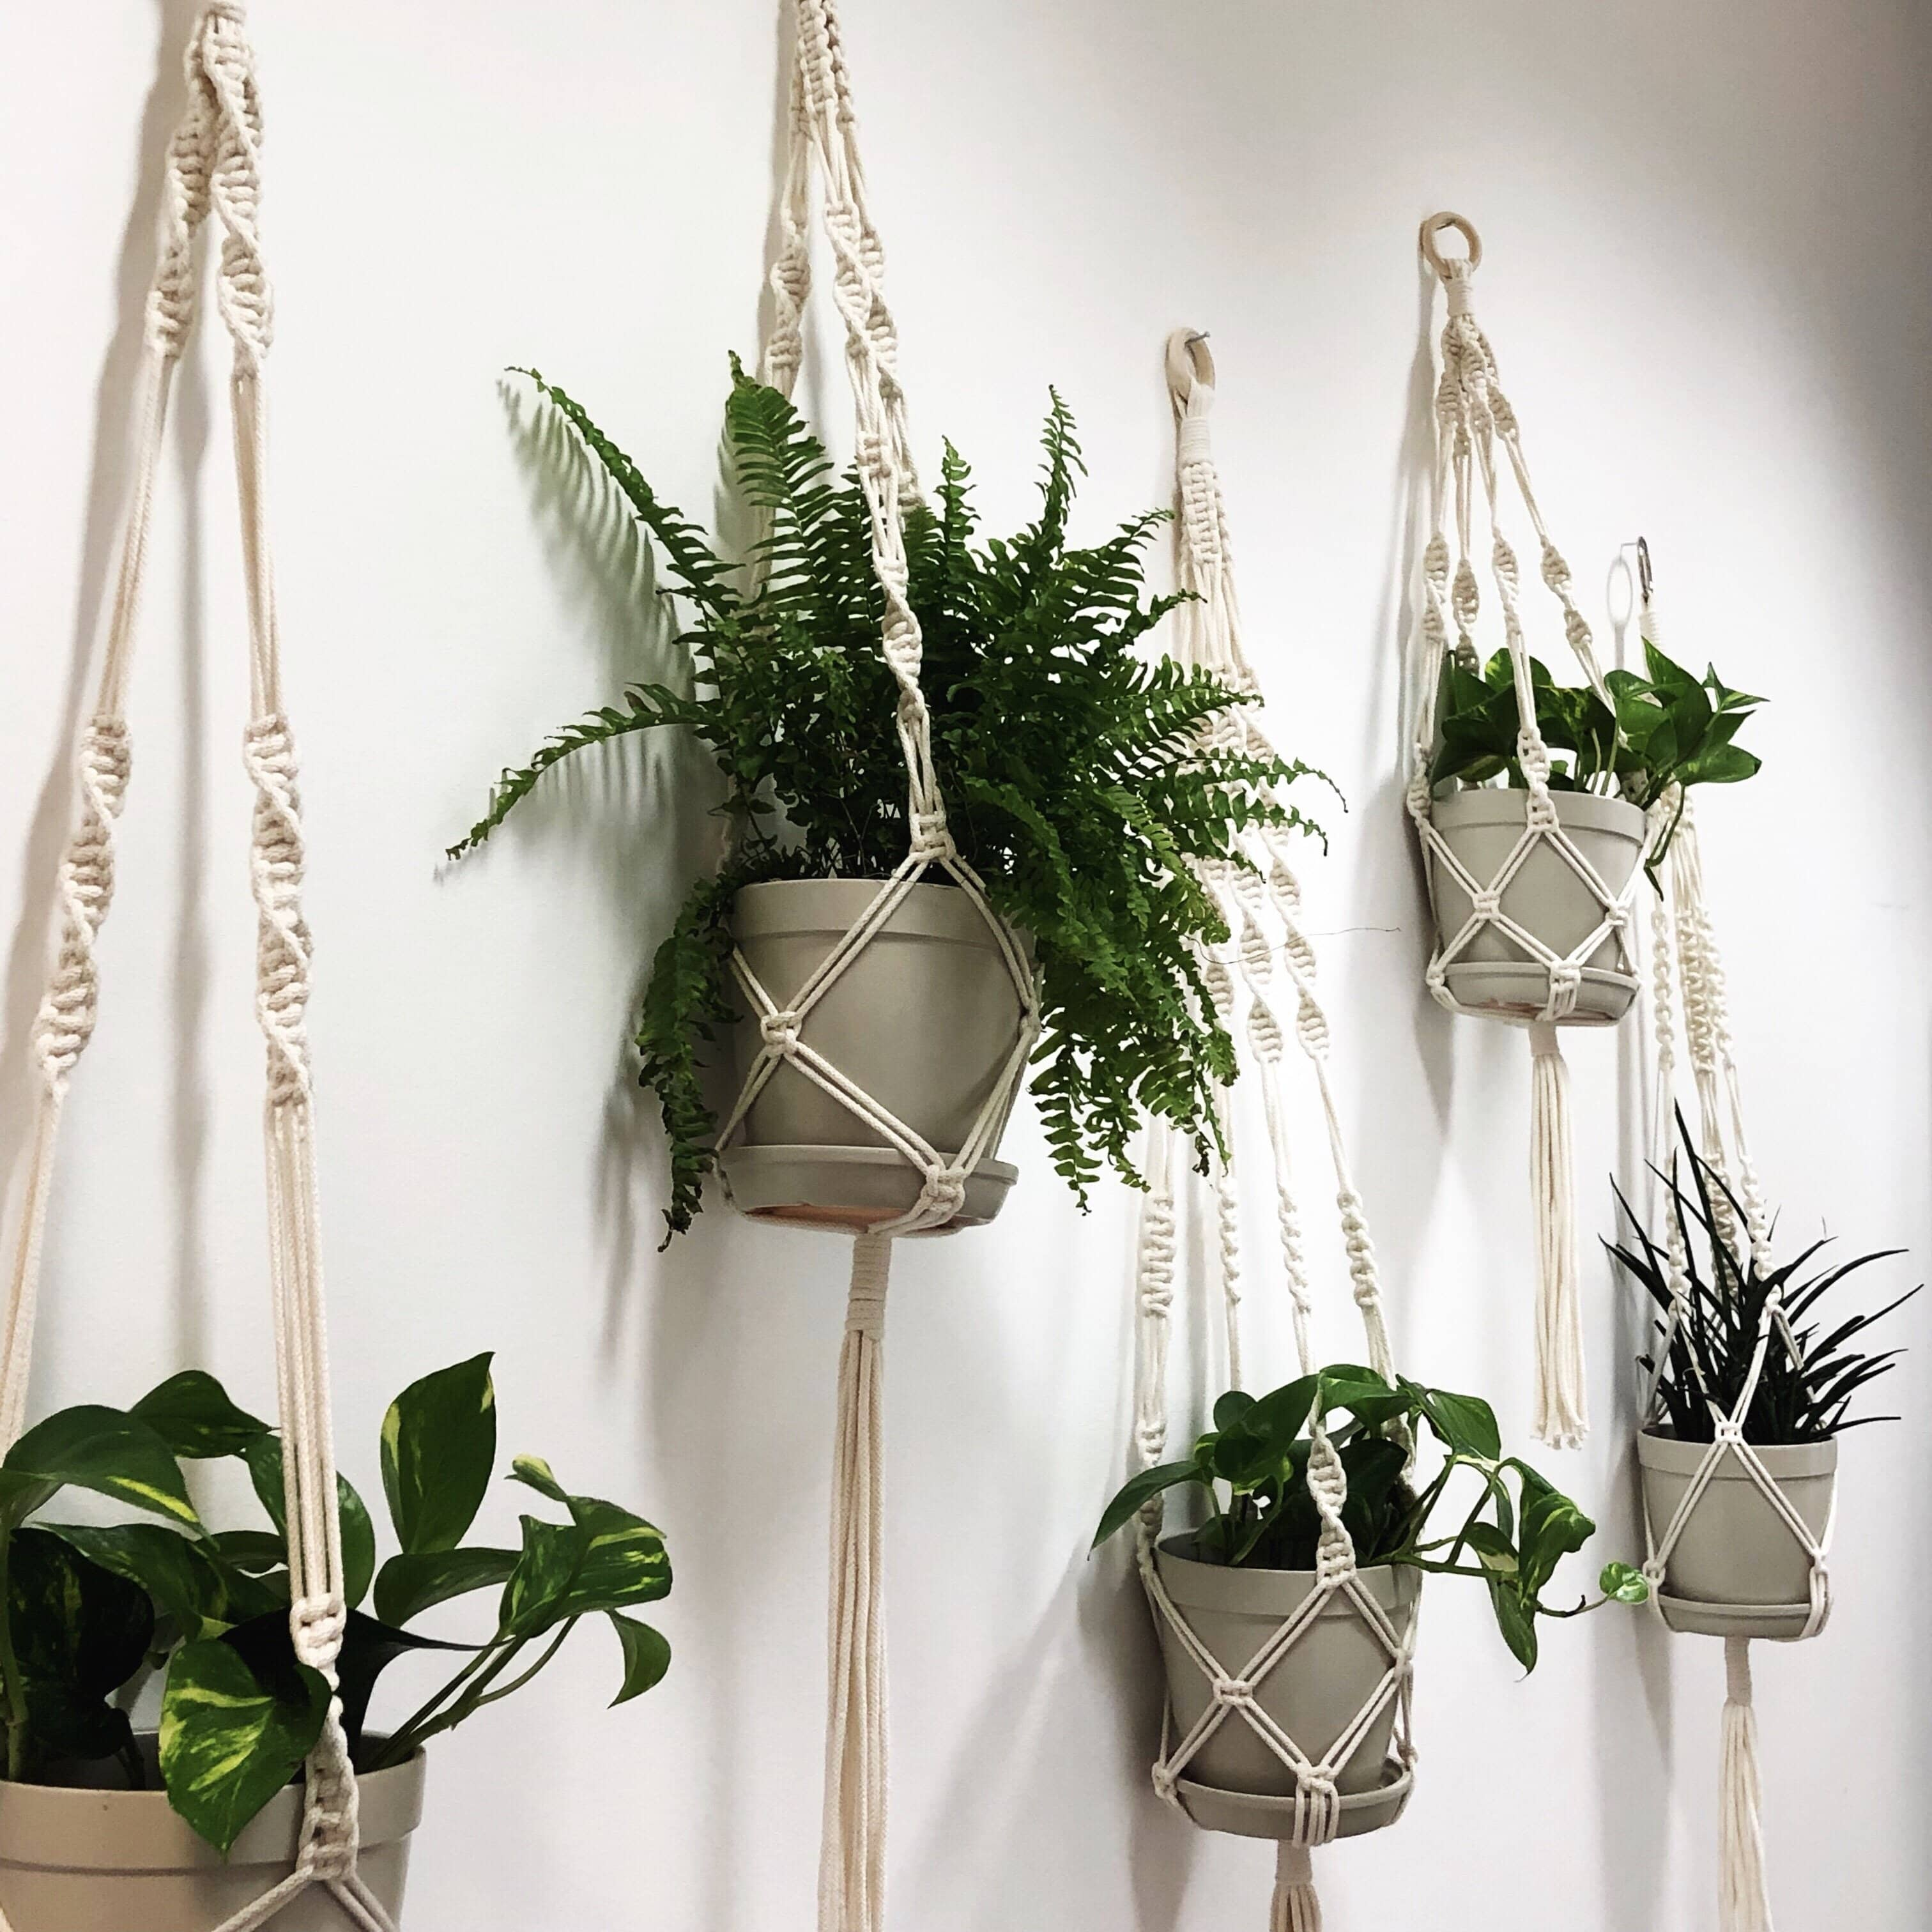 Learn To Make A Stunning Macrame Plant Hanger London Craft Club